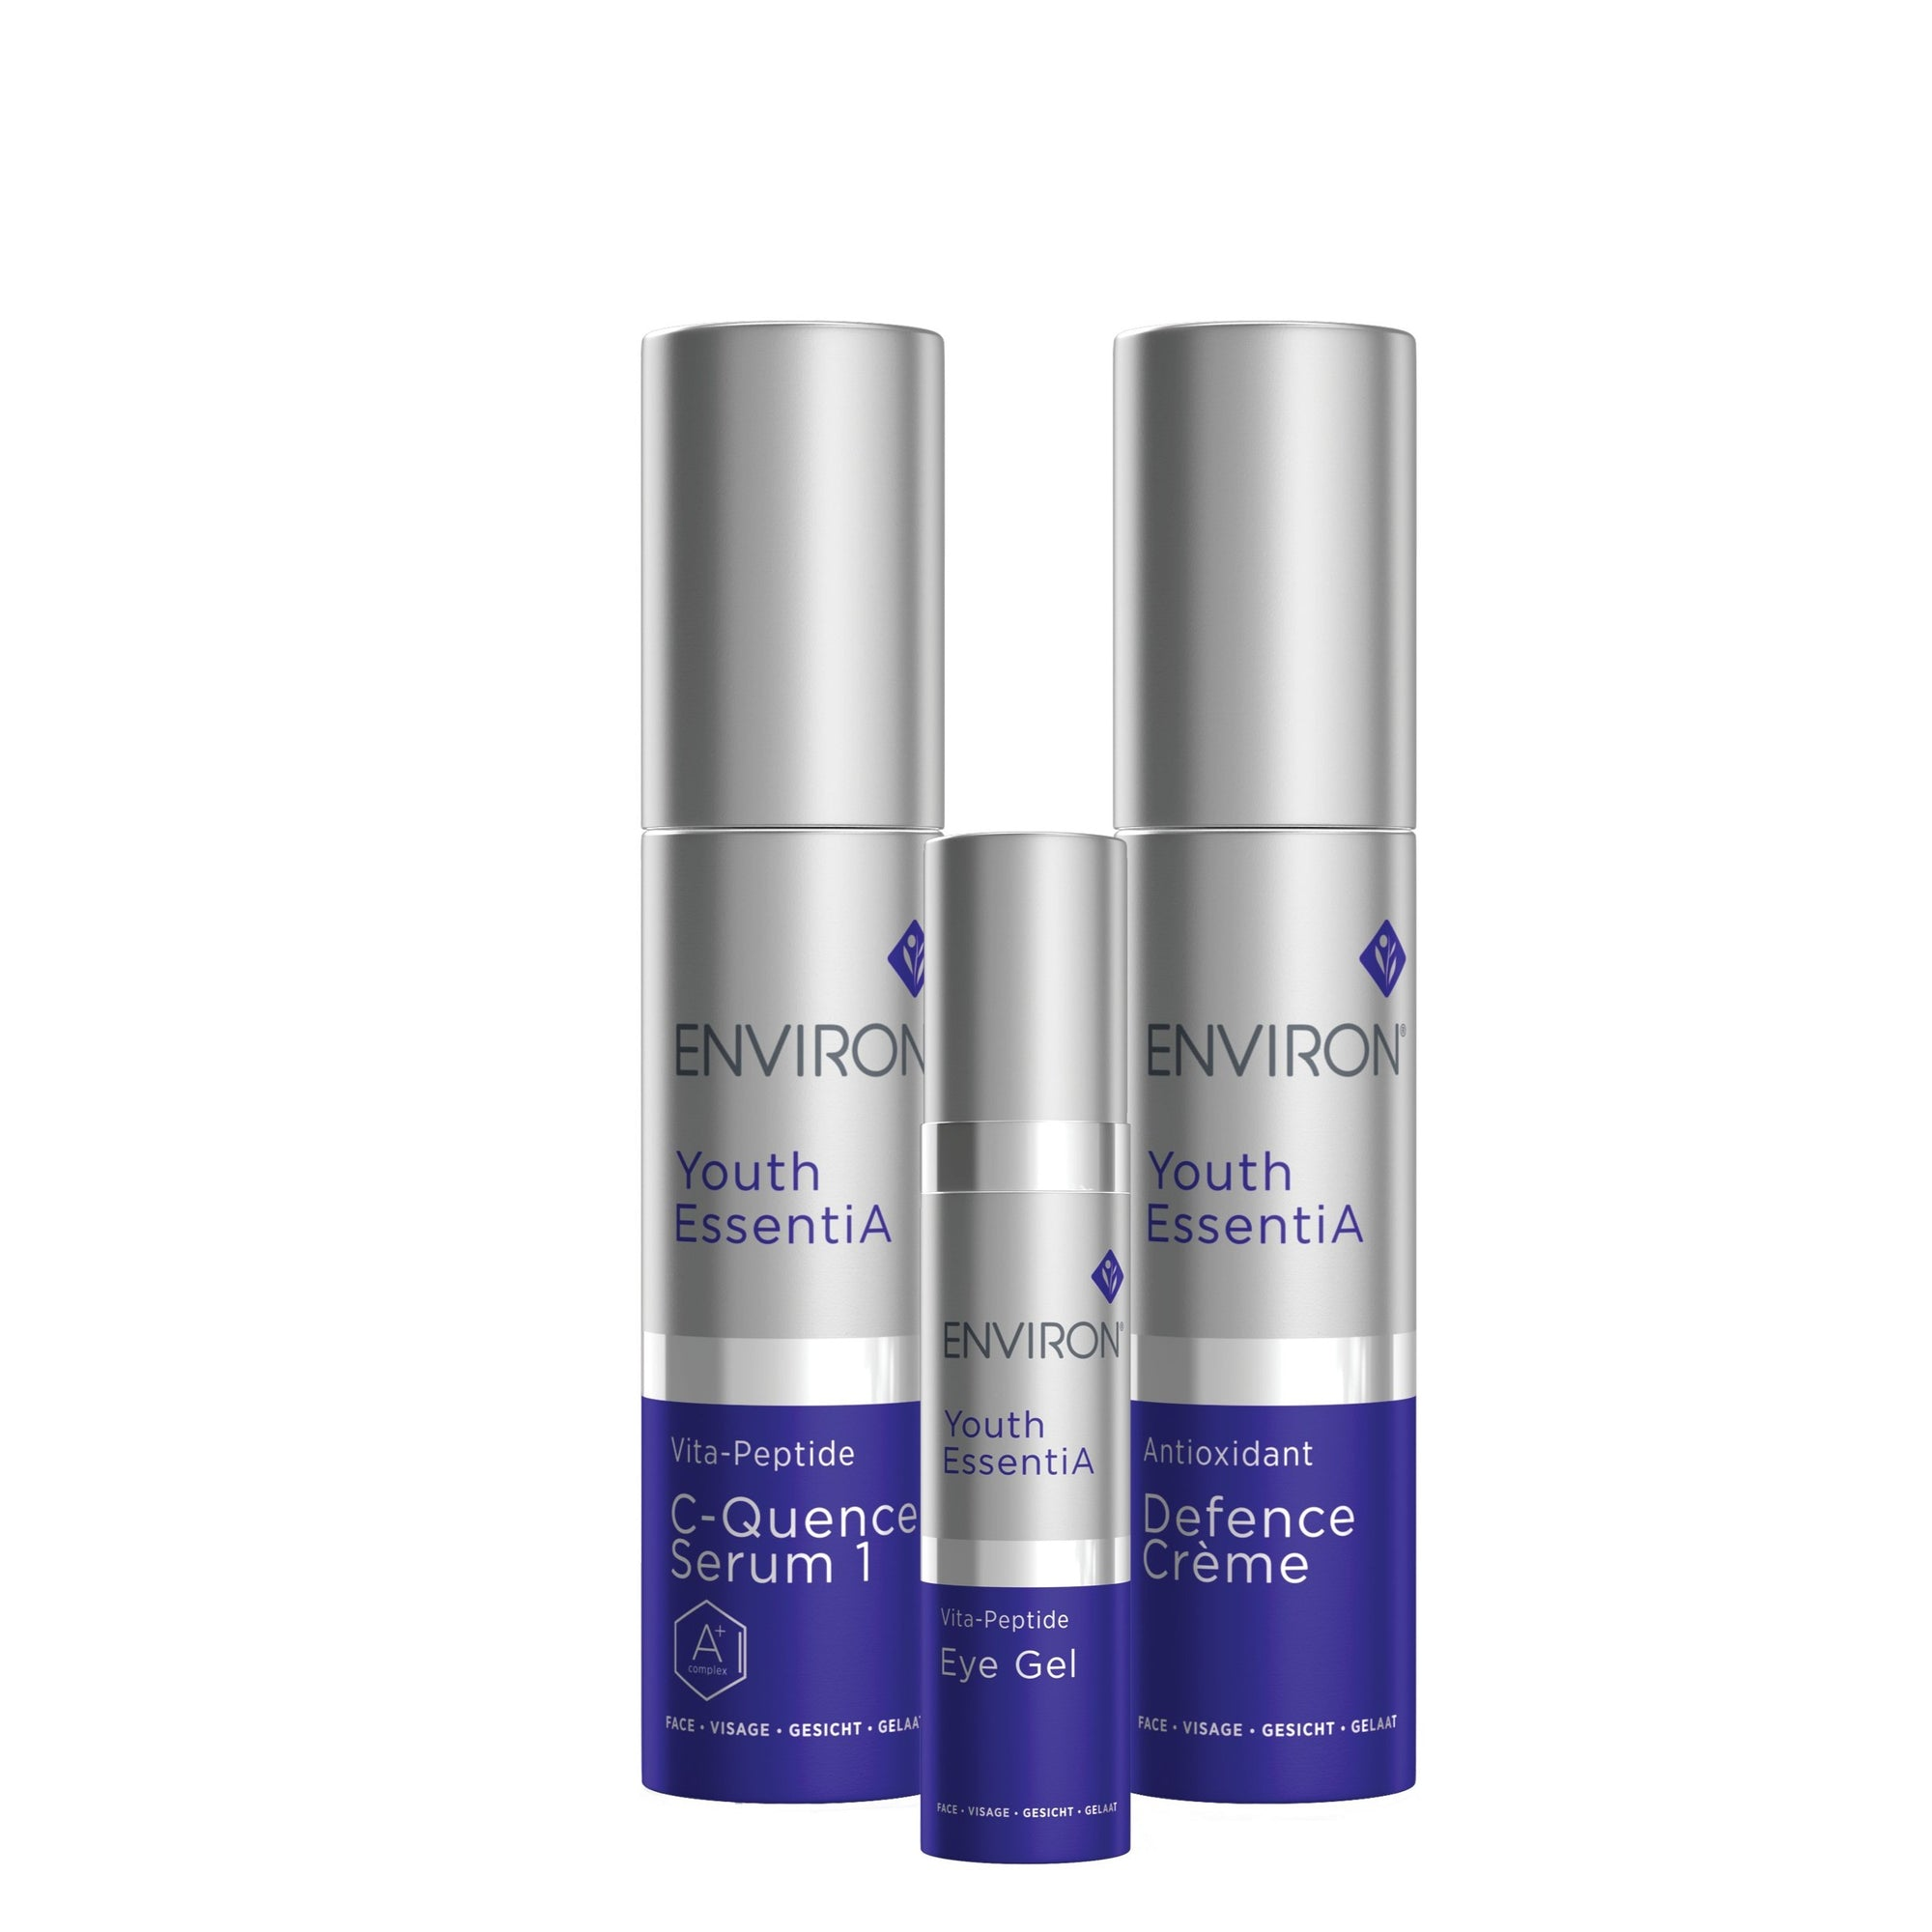 Environ - YOUTH ESSENTIA 3-PIECE KIT #1